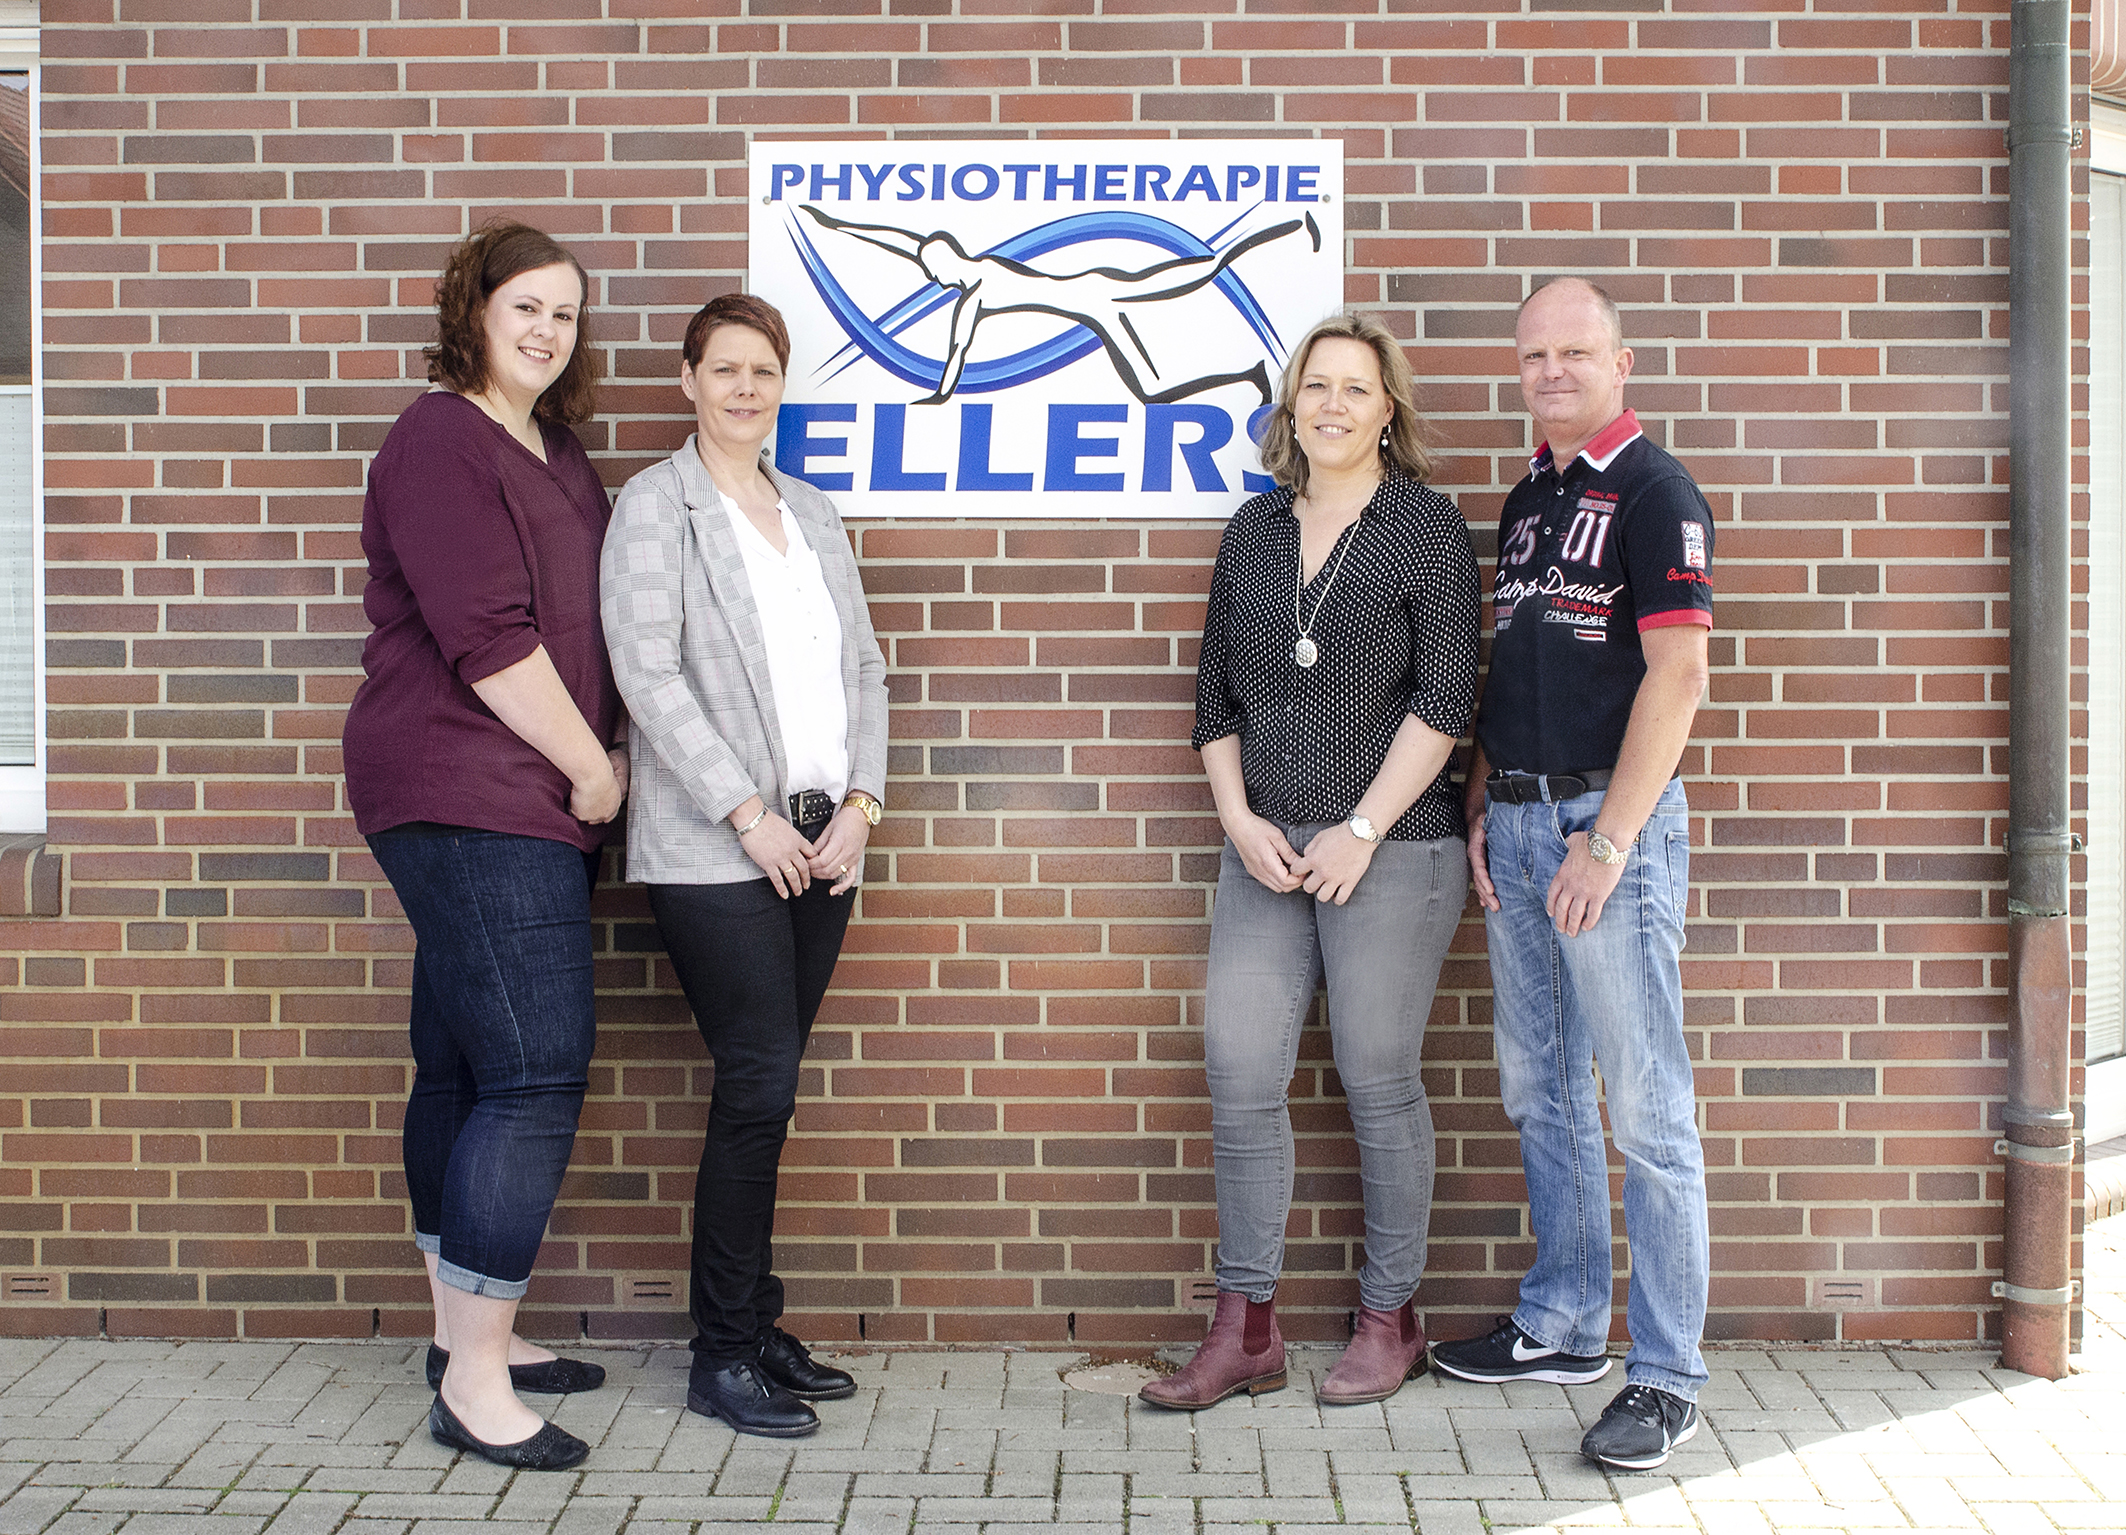 Physiotherapie_Ellers_Mai2019_04